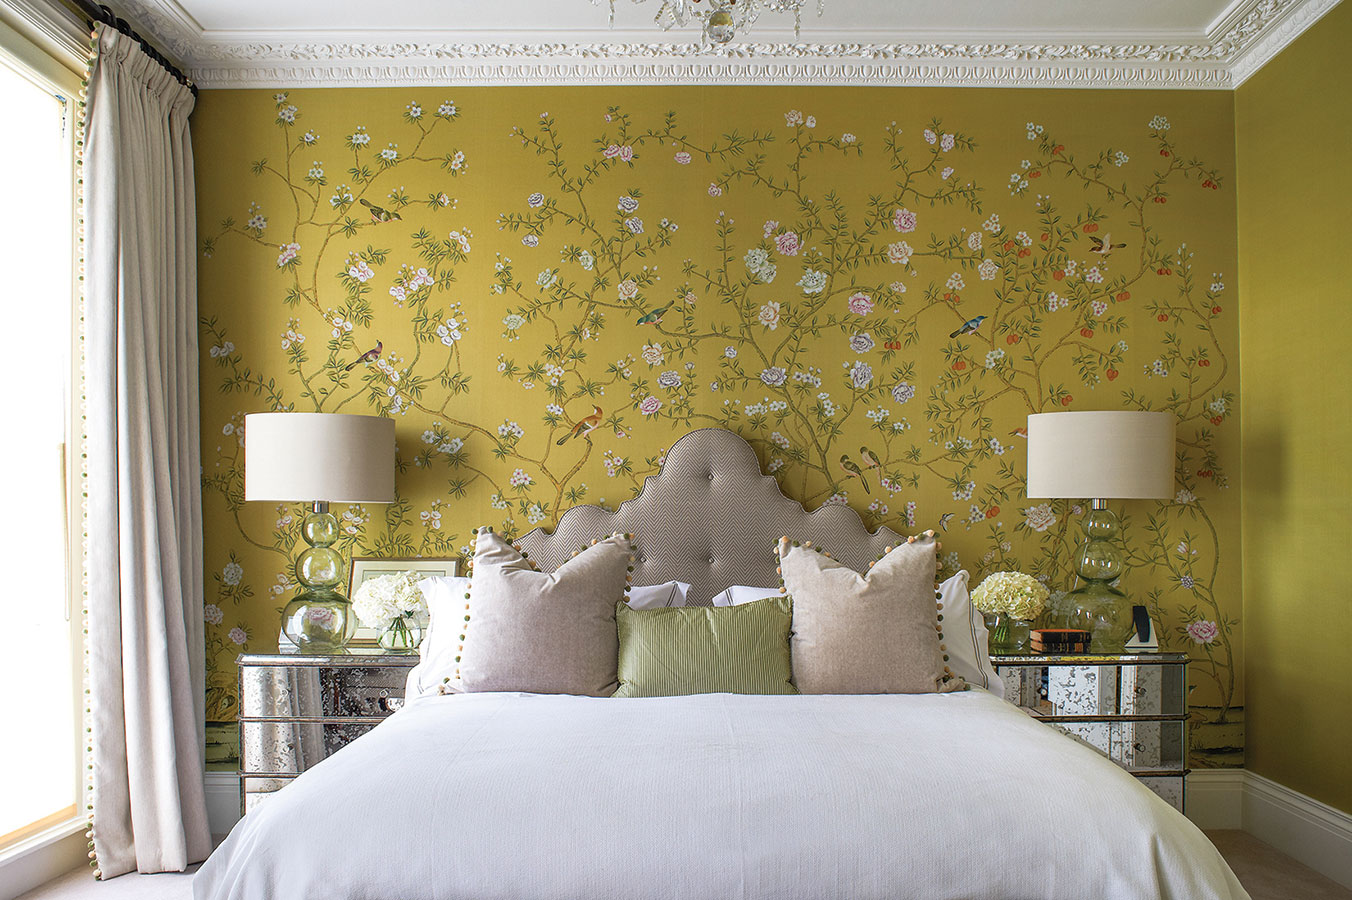 50 Floral Wallpaper And Mural Ideas Your No 1 Source Of Architecture And Interior Design News